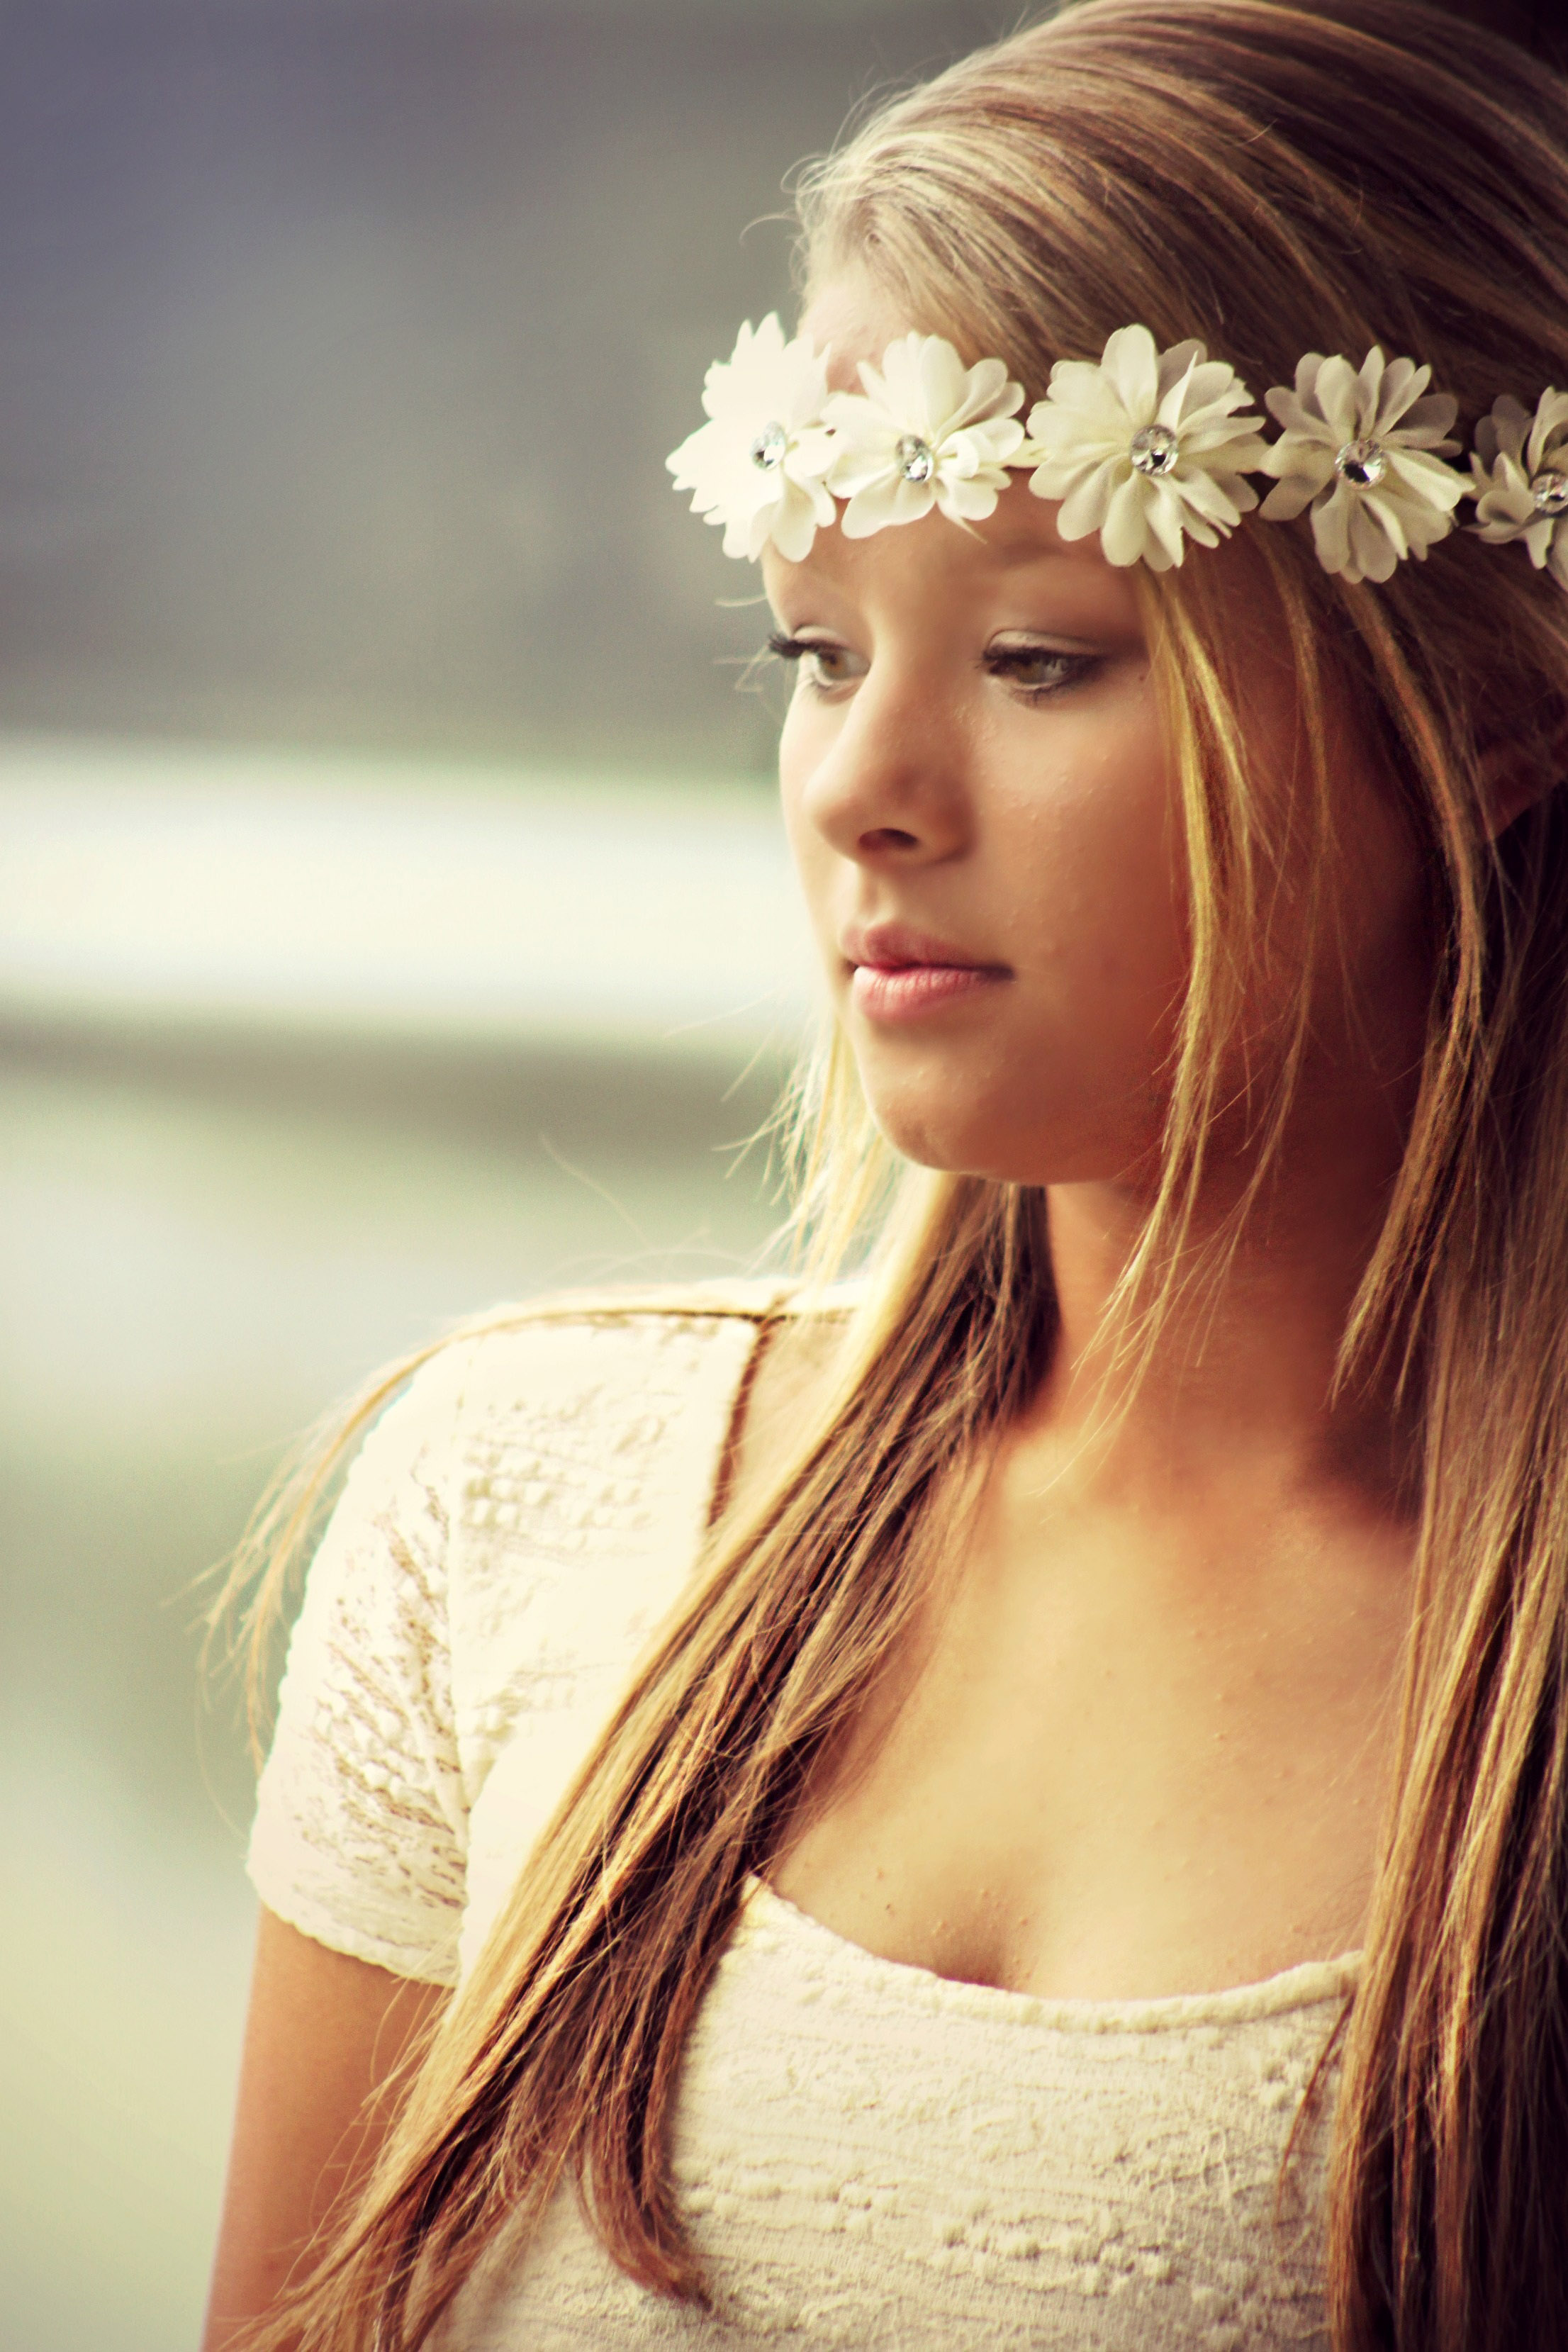 pretty girl with crown of white flowers image - free stock photo